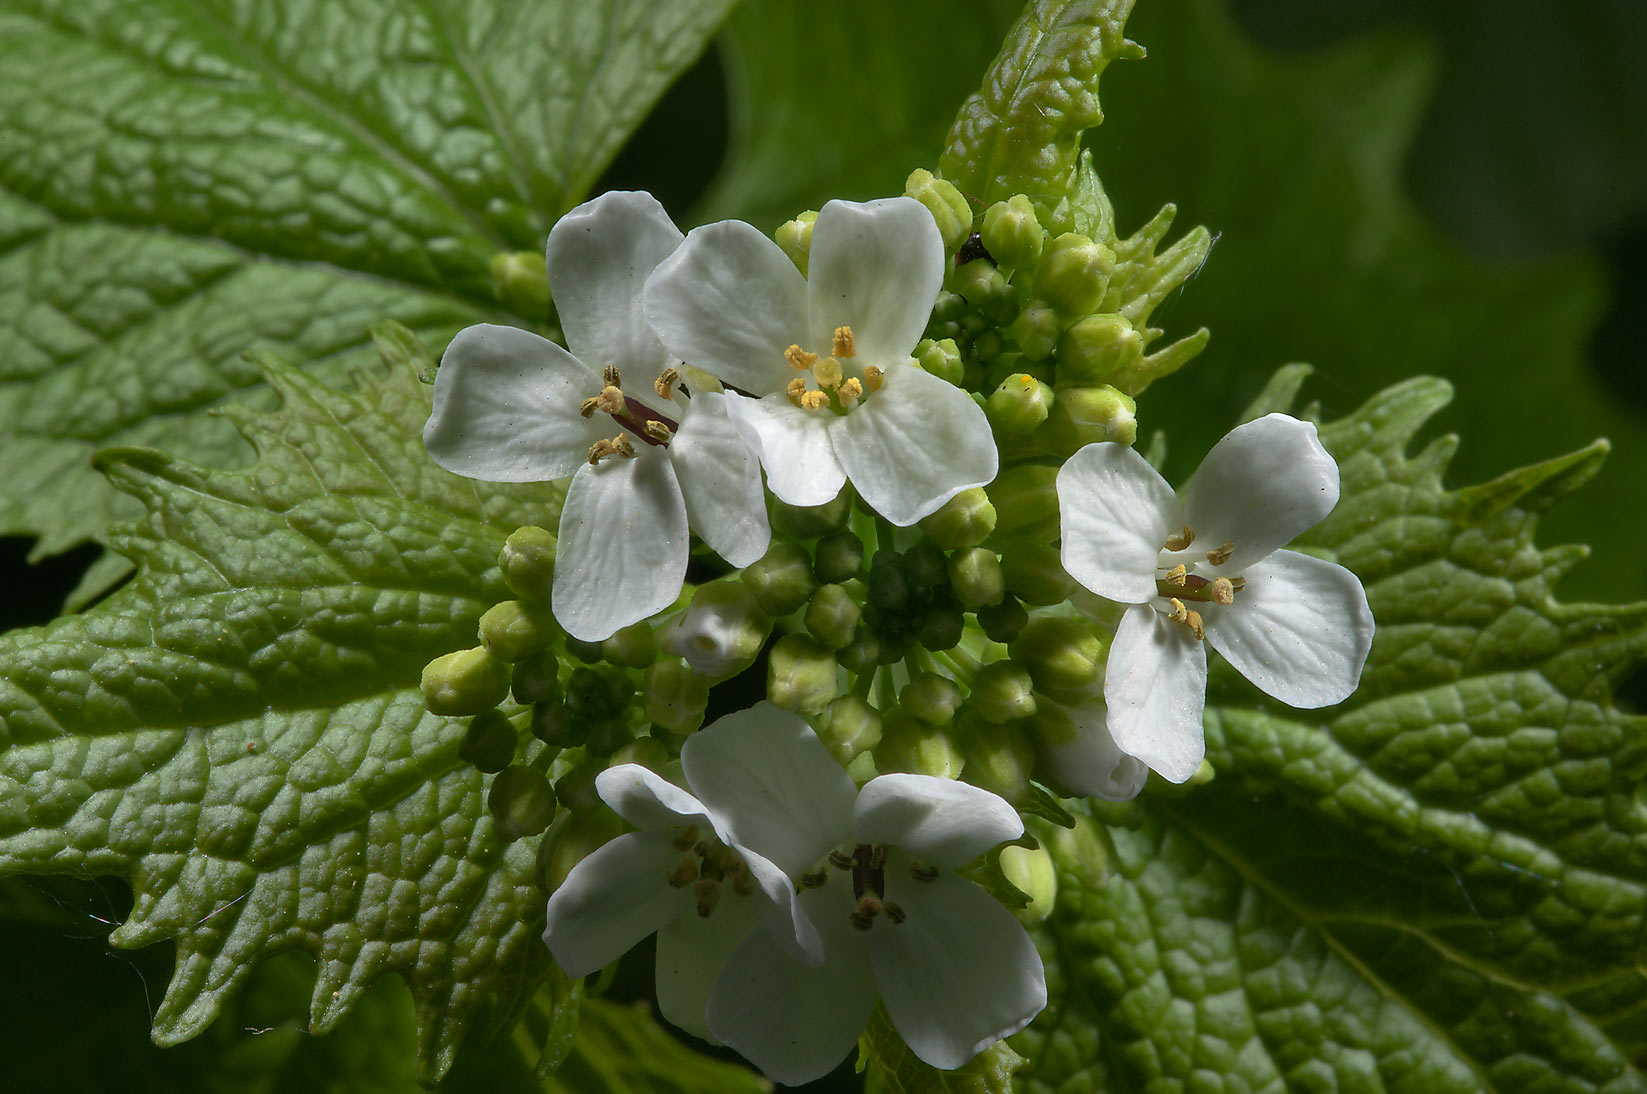 Flowers of garlic mustard (Alliaria petiolata) in...Institute. St.Petersburg, Russia